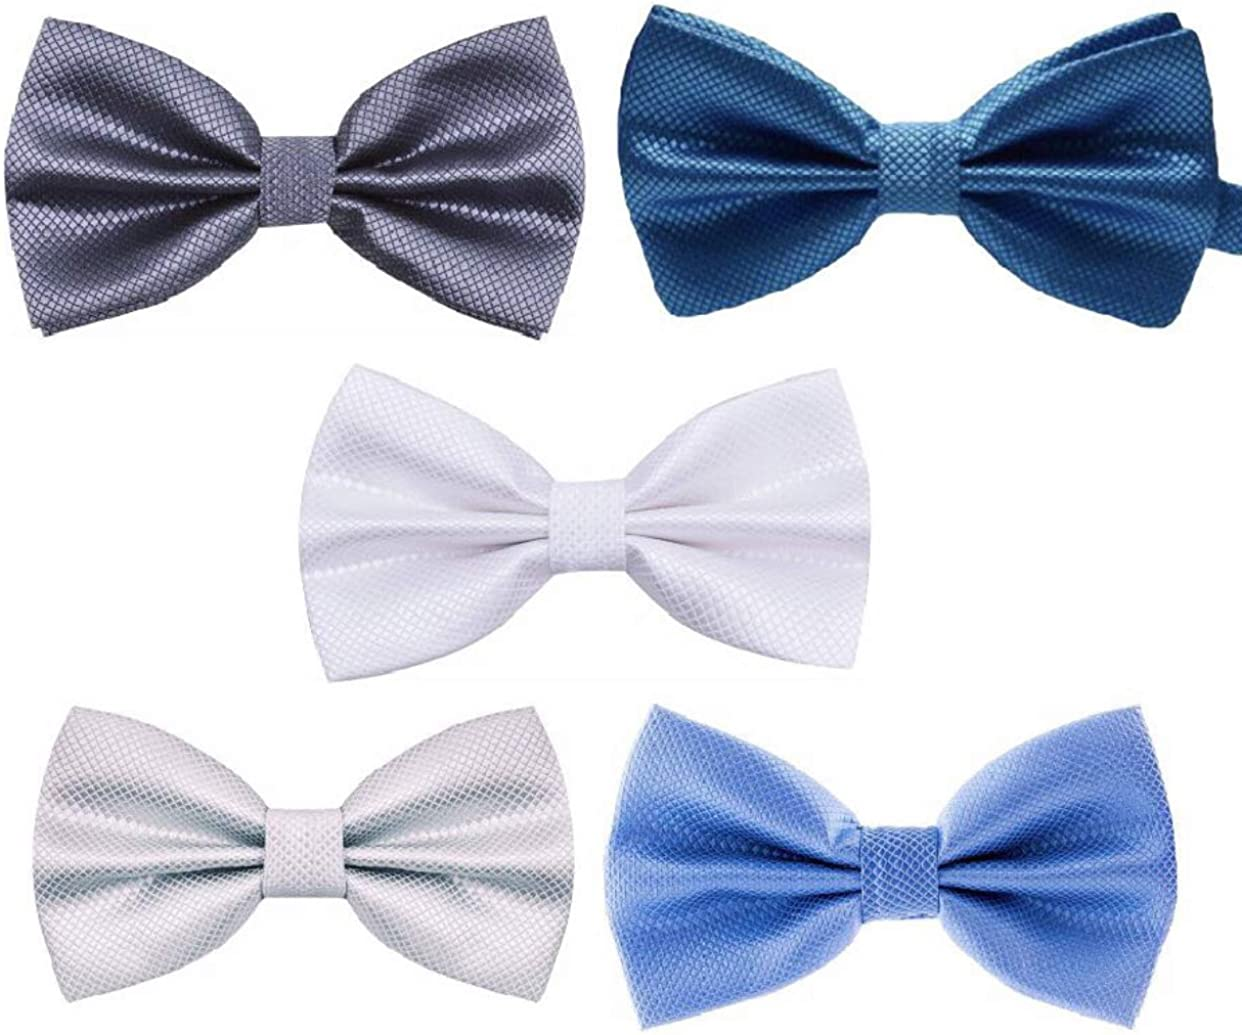 CareerGear 5 PACK Formal Adjustable Pre-tied Bow ties for Men and Boys in different variations